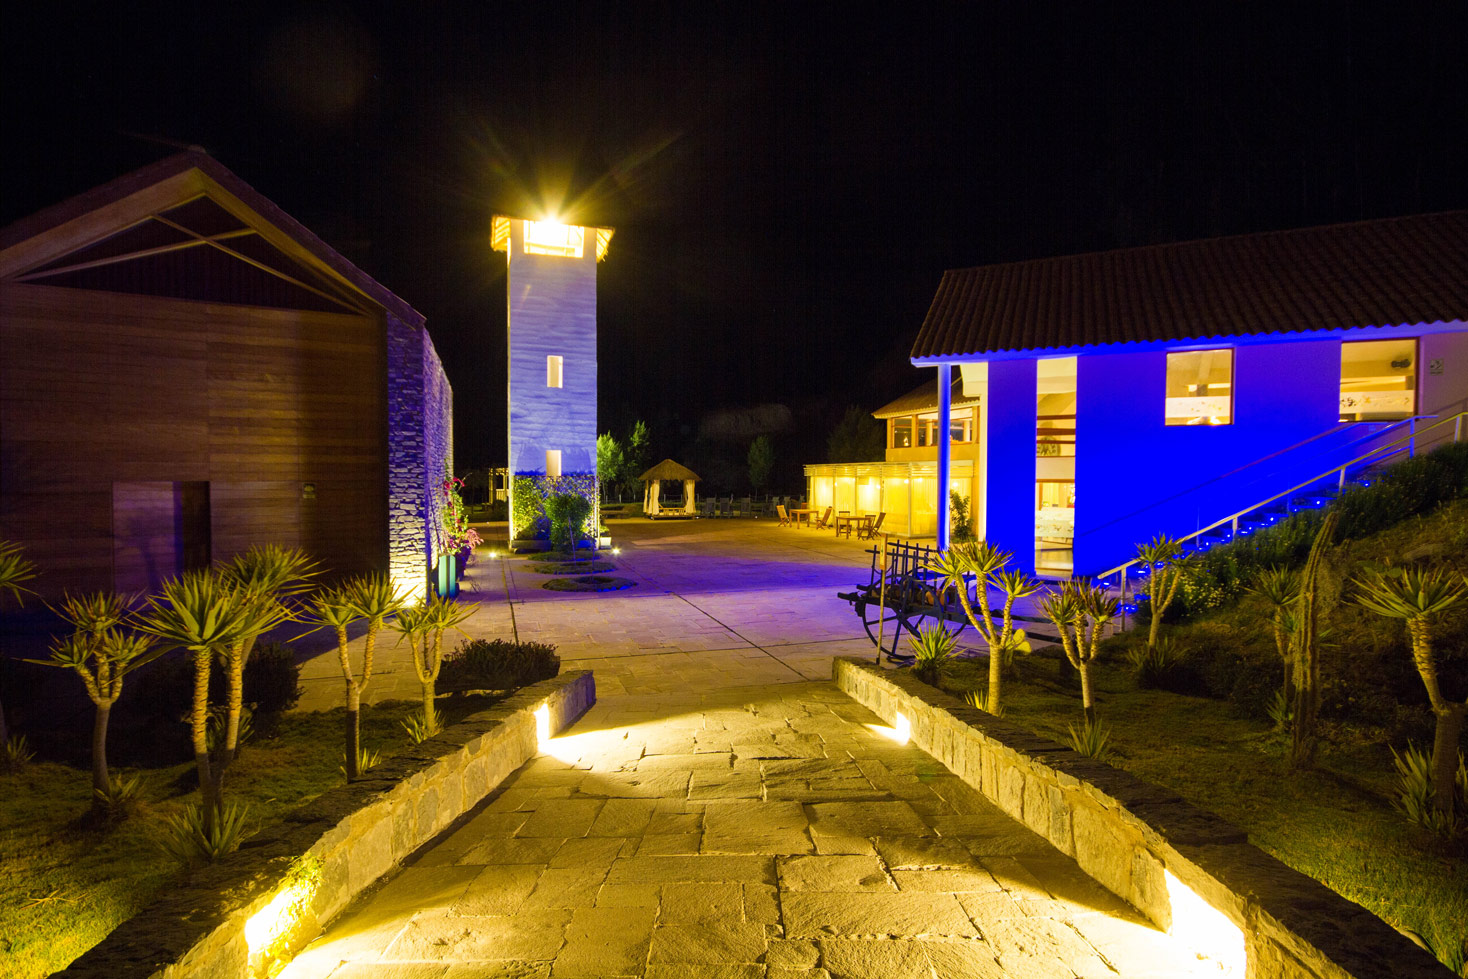 Hotel Colca Aranwa Valley del Colca lit up at night near Colca Canyon is the best hotel to stay before checking out the Andean Condors in Colca Canyon with kids